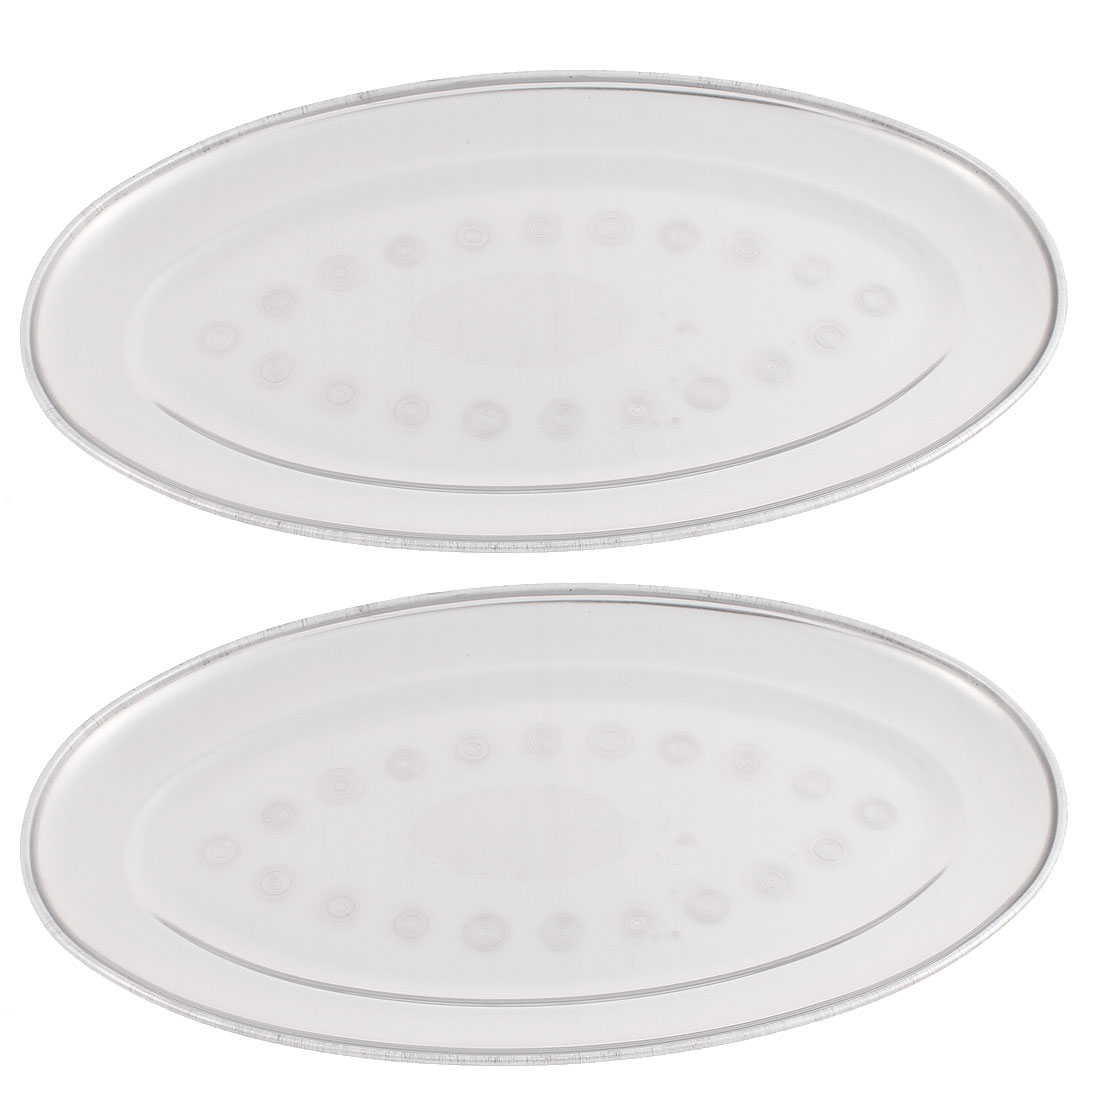 "Oval Shaped Food Container Dish Plate 11"" Length 2PCS"